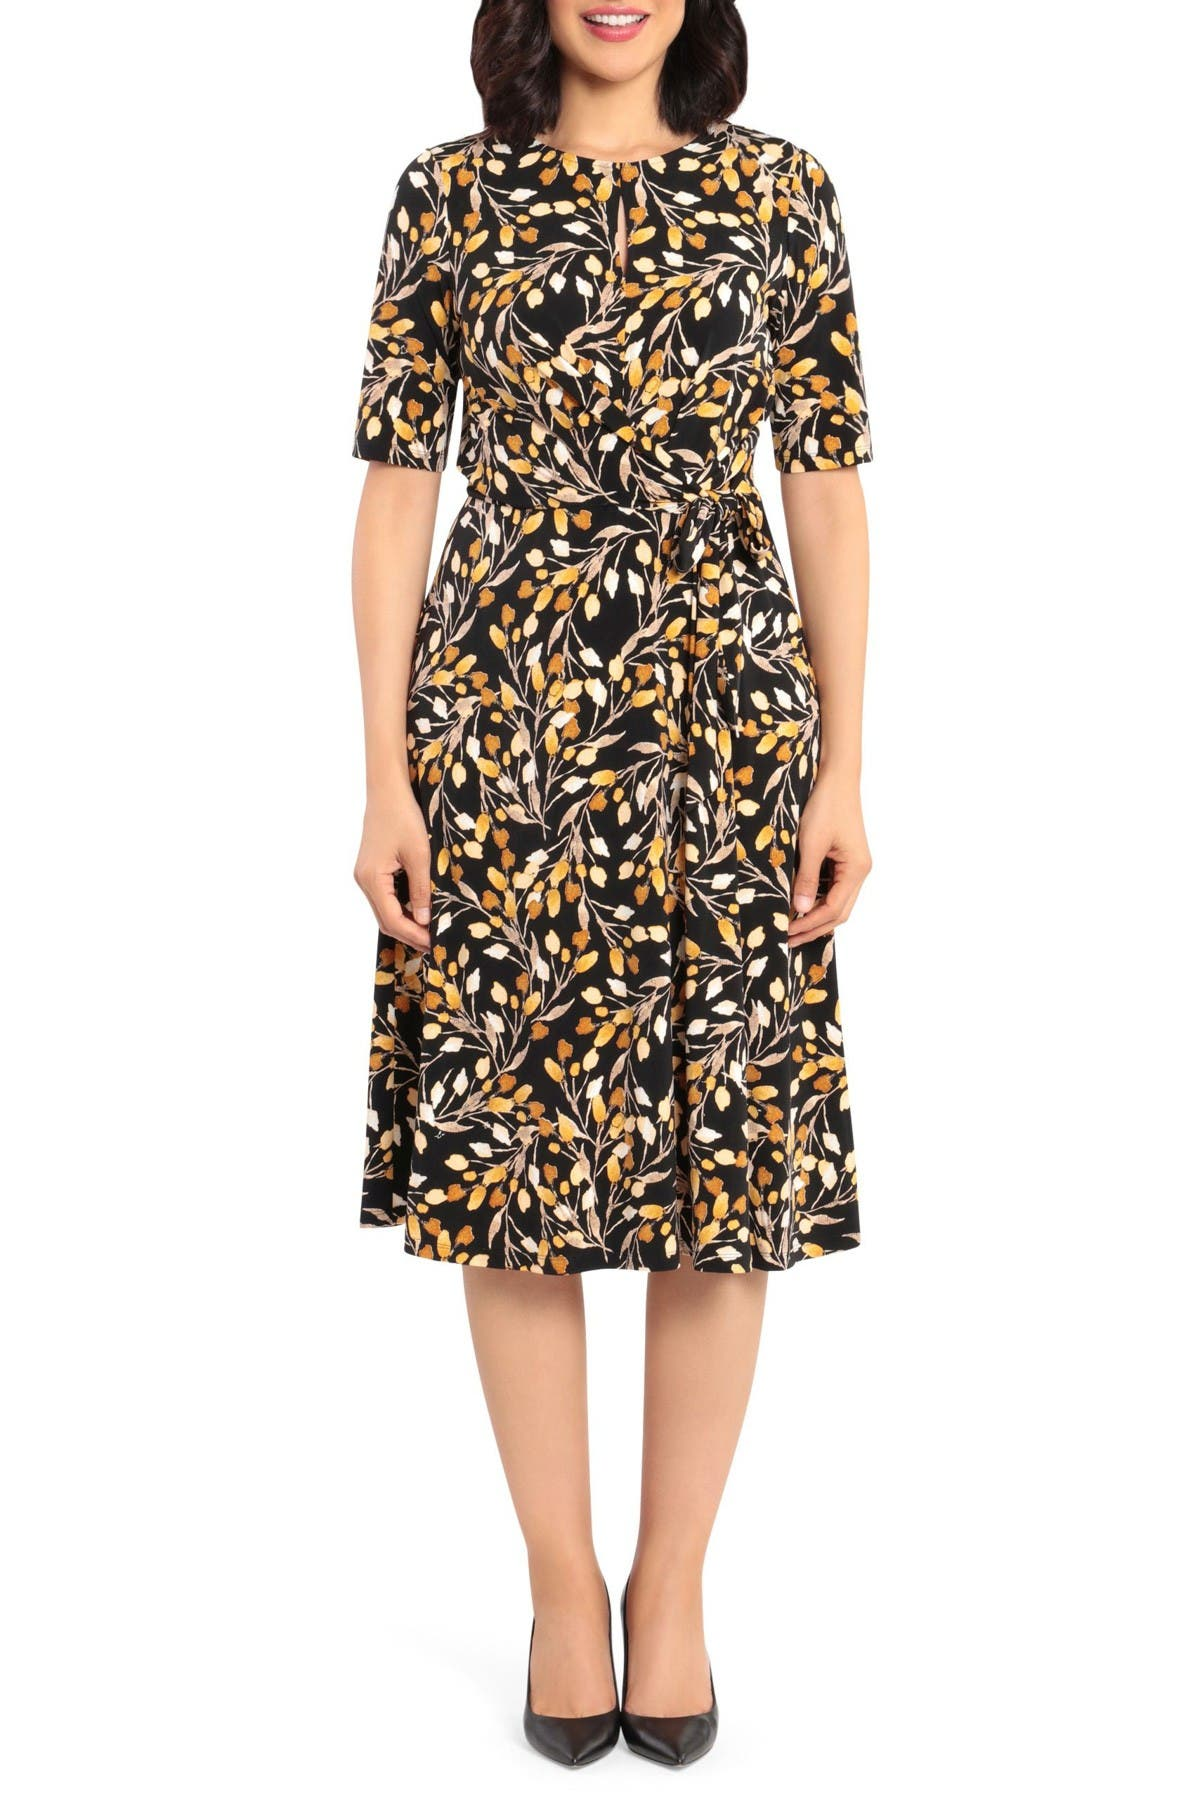 Image of London Times Printed Fit & Flare Dress